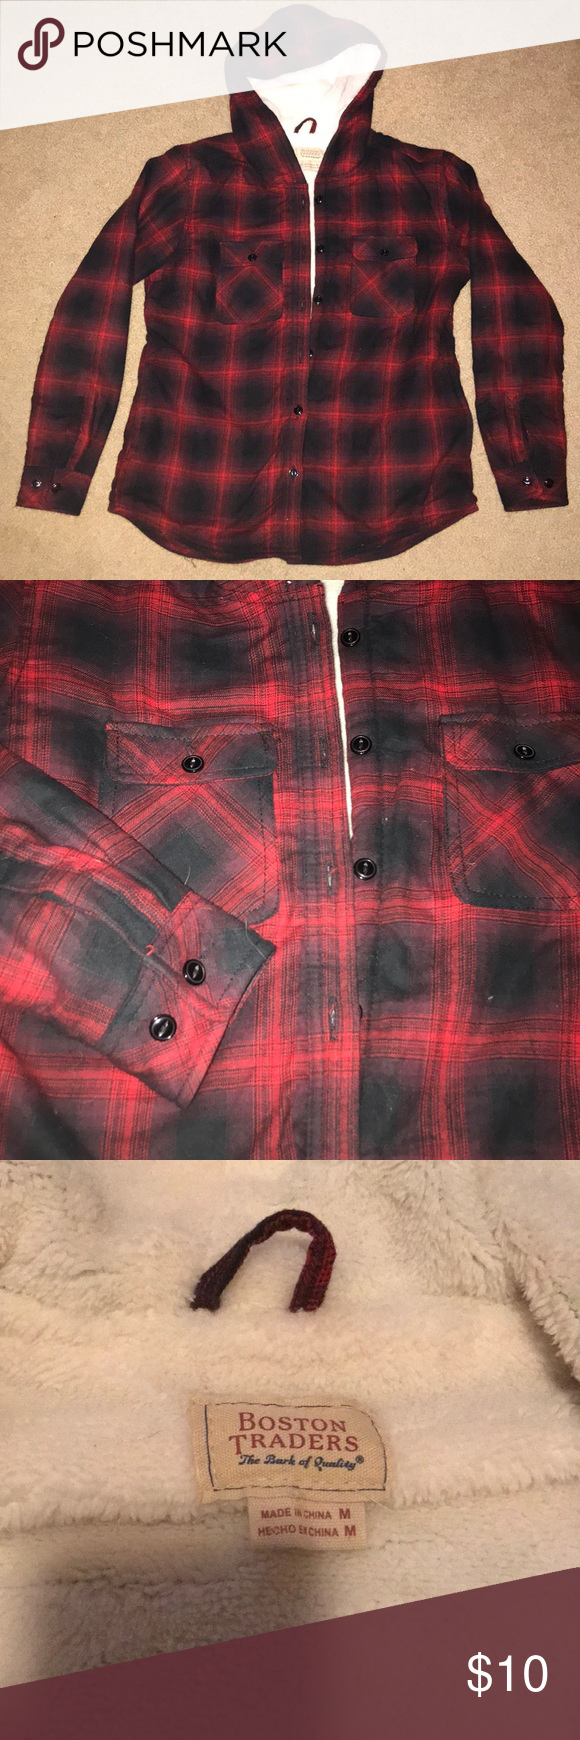 Flannel jacket with fur inside  NWOT Fur Lined Flannel  My Posh Closet  Pinterest  Flannels Fur